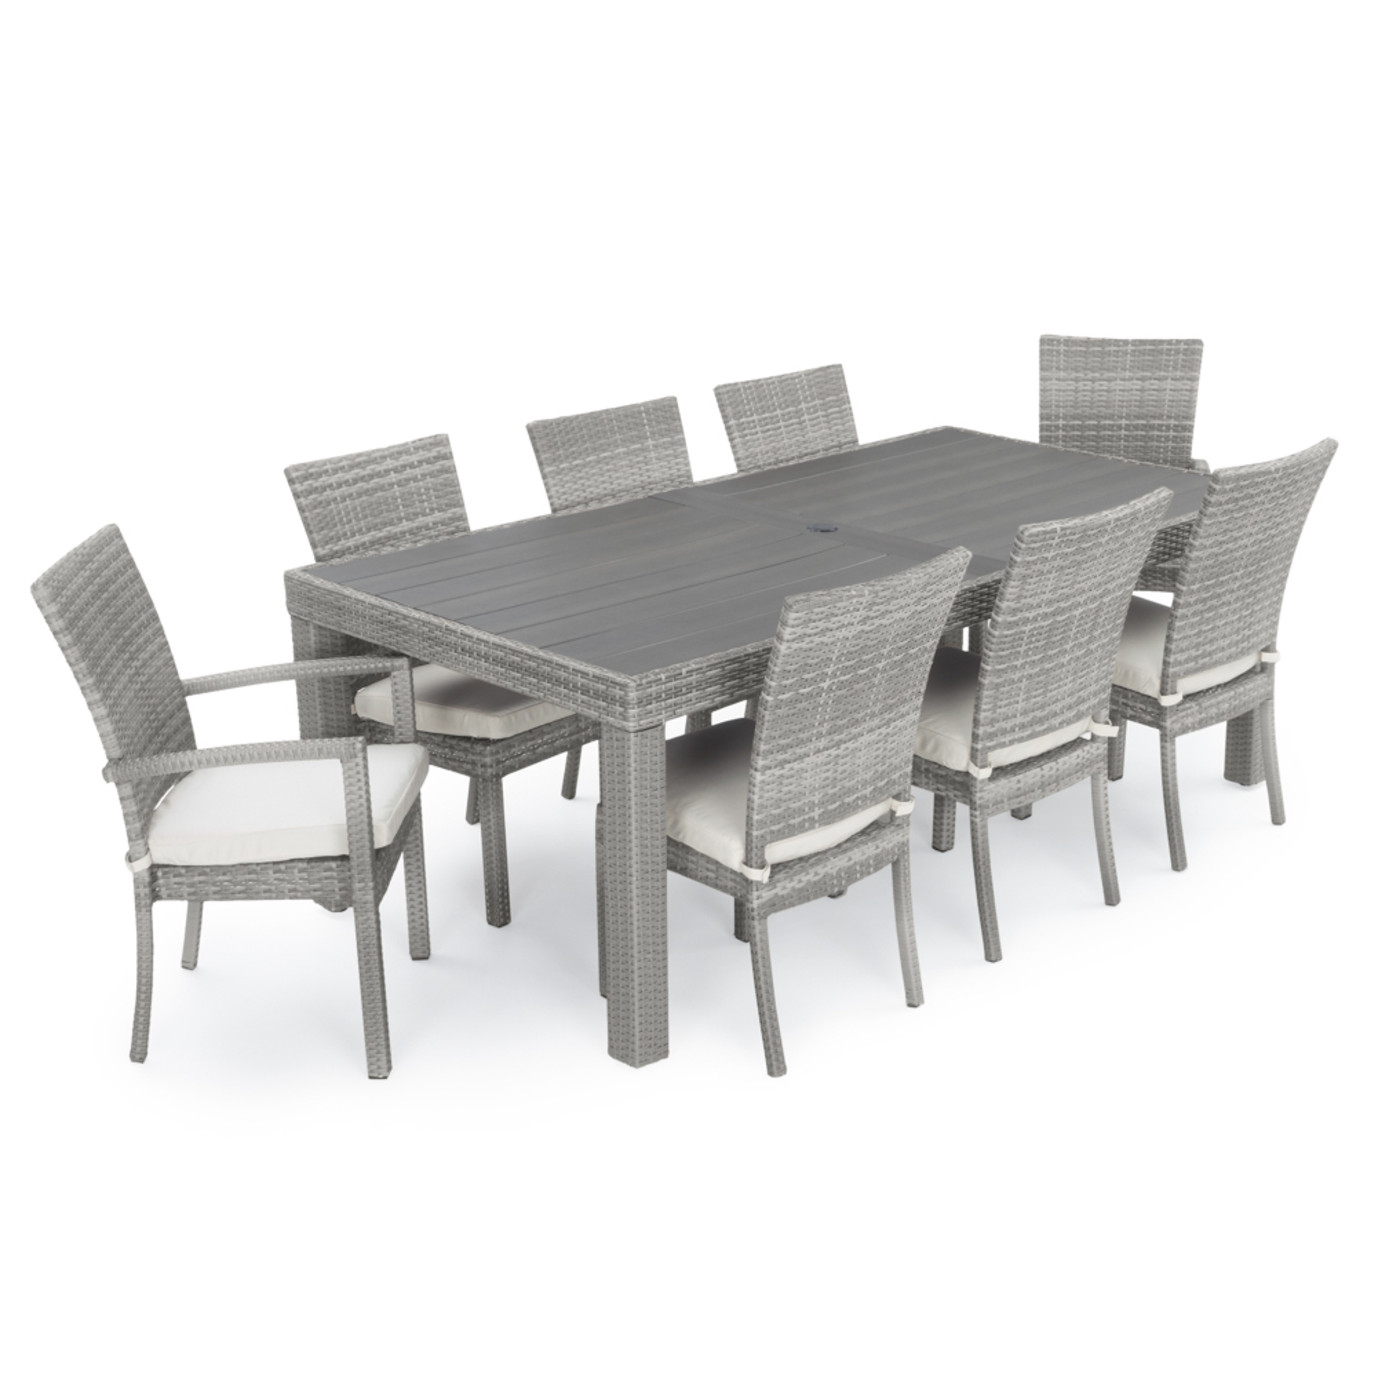 CannesTM Woven Dining Set